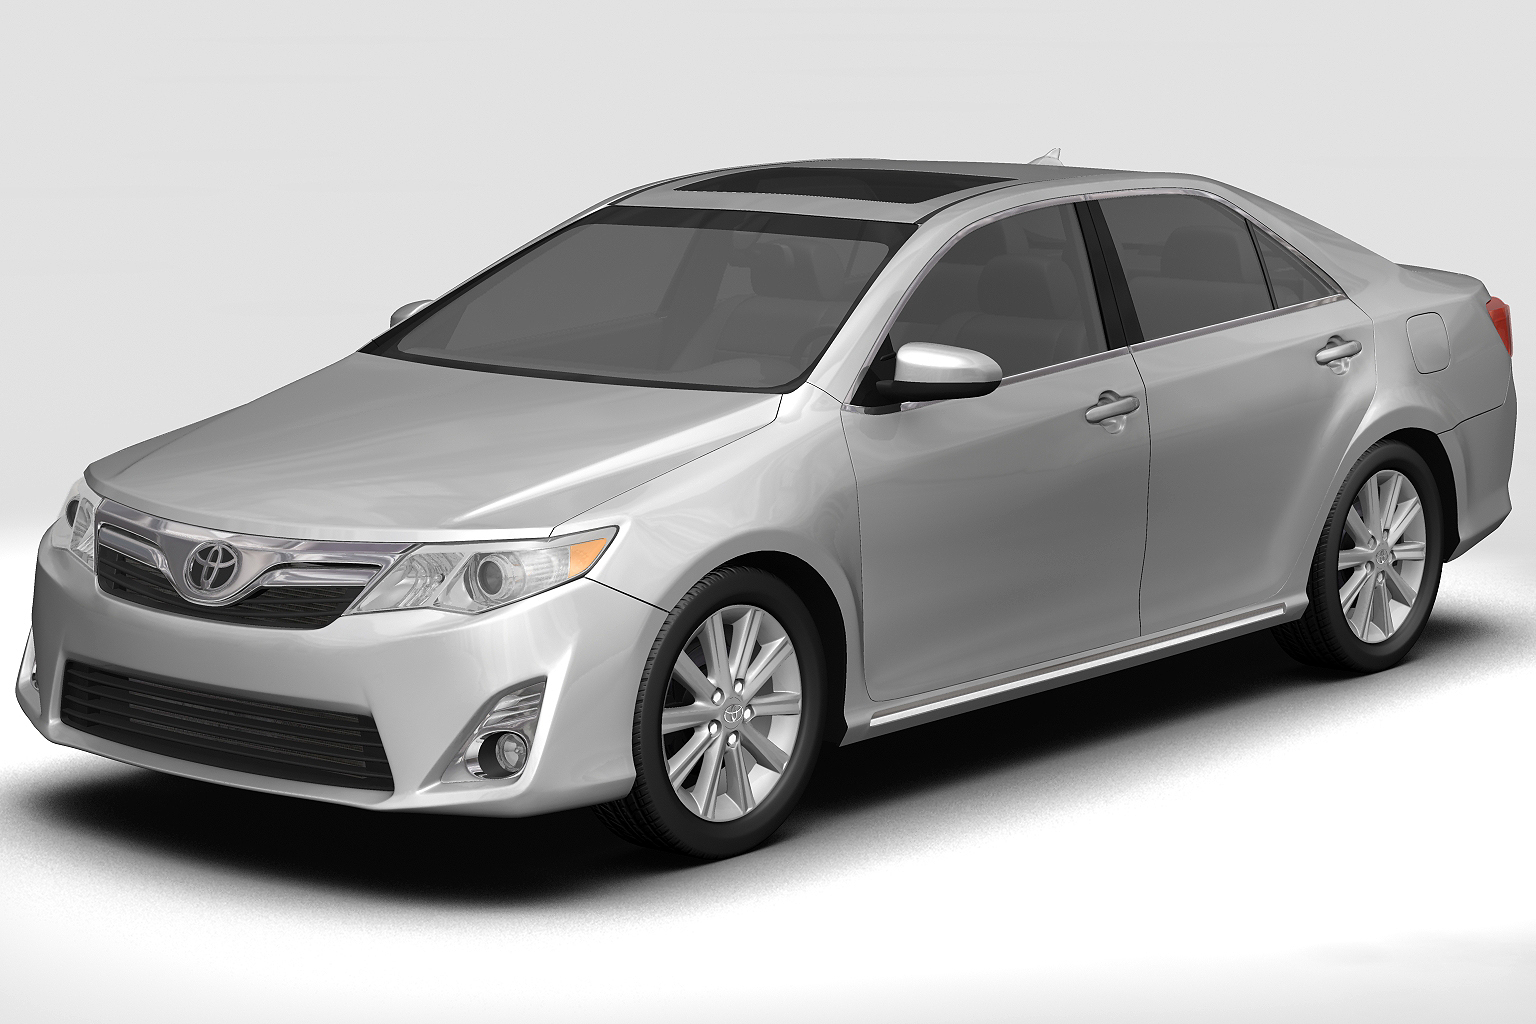 2012 Toyota Camry 3d Model Buy 2012 Toyota Camry 3d